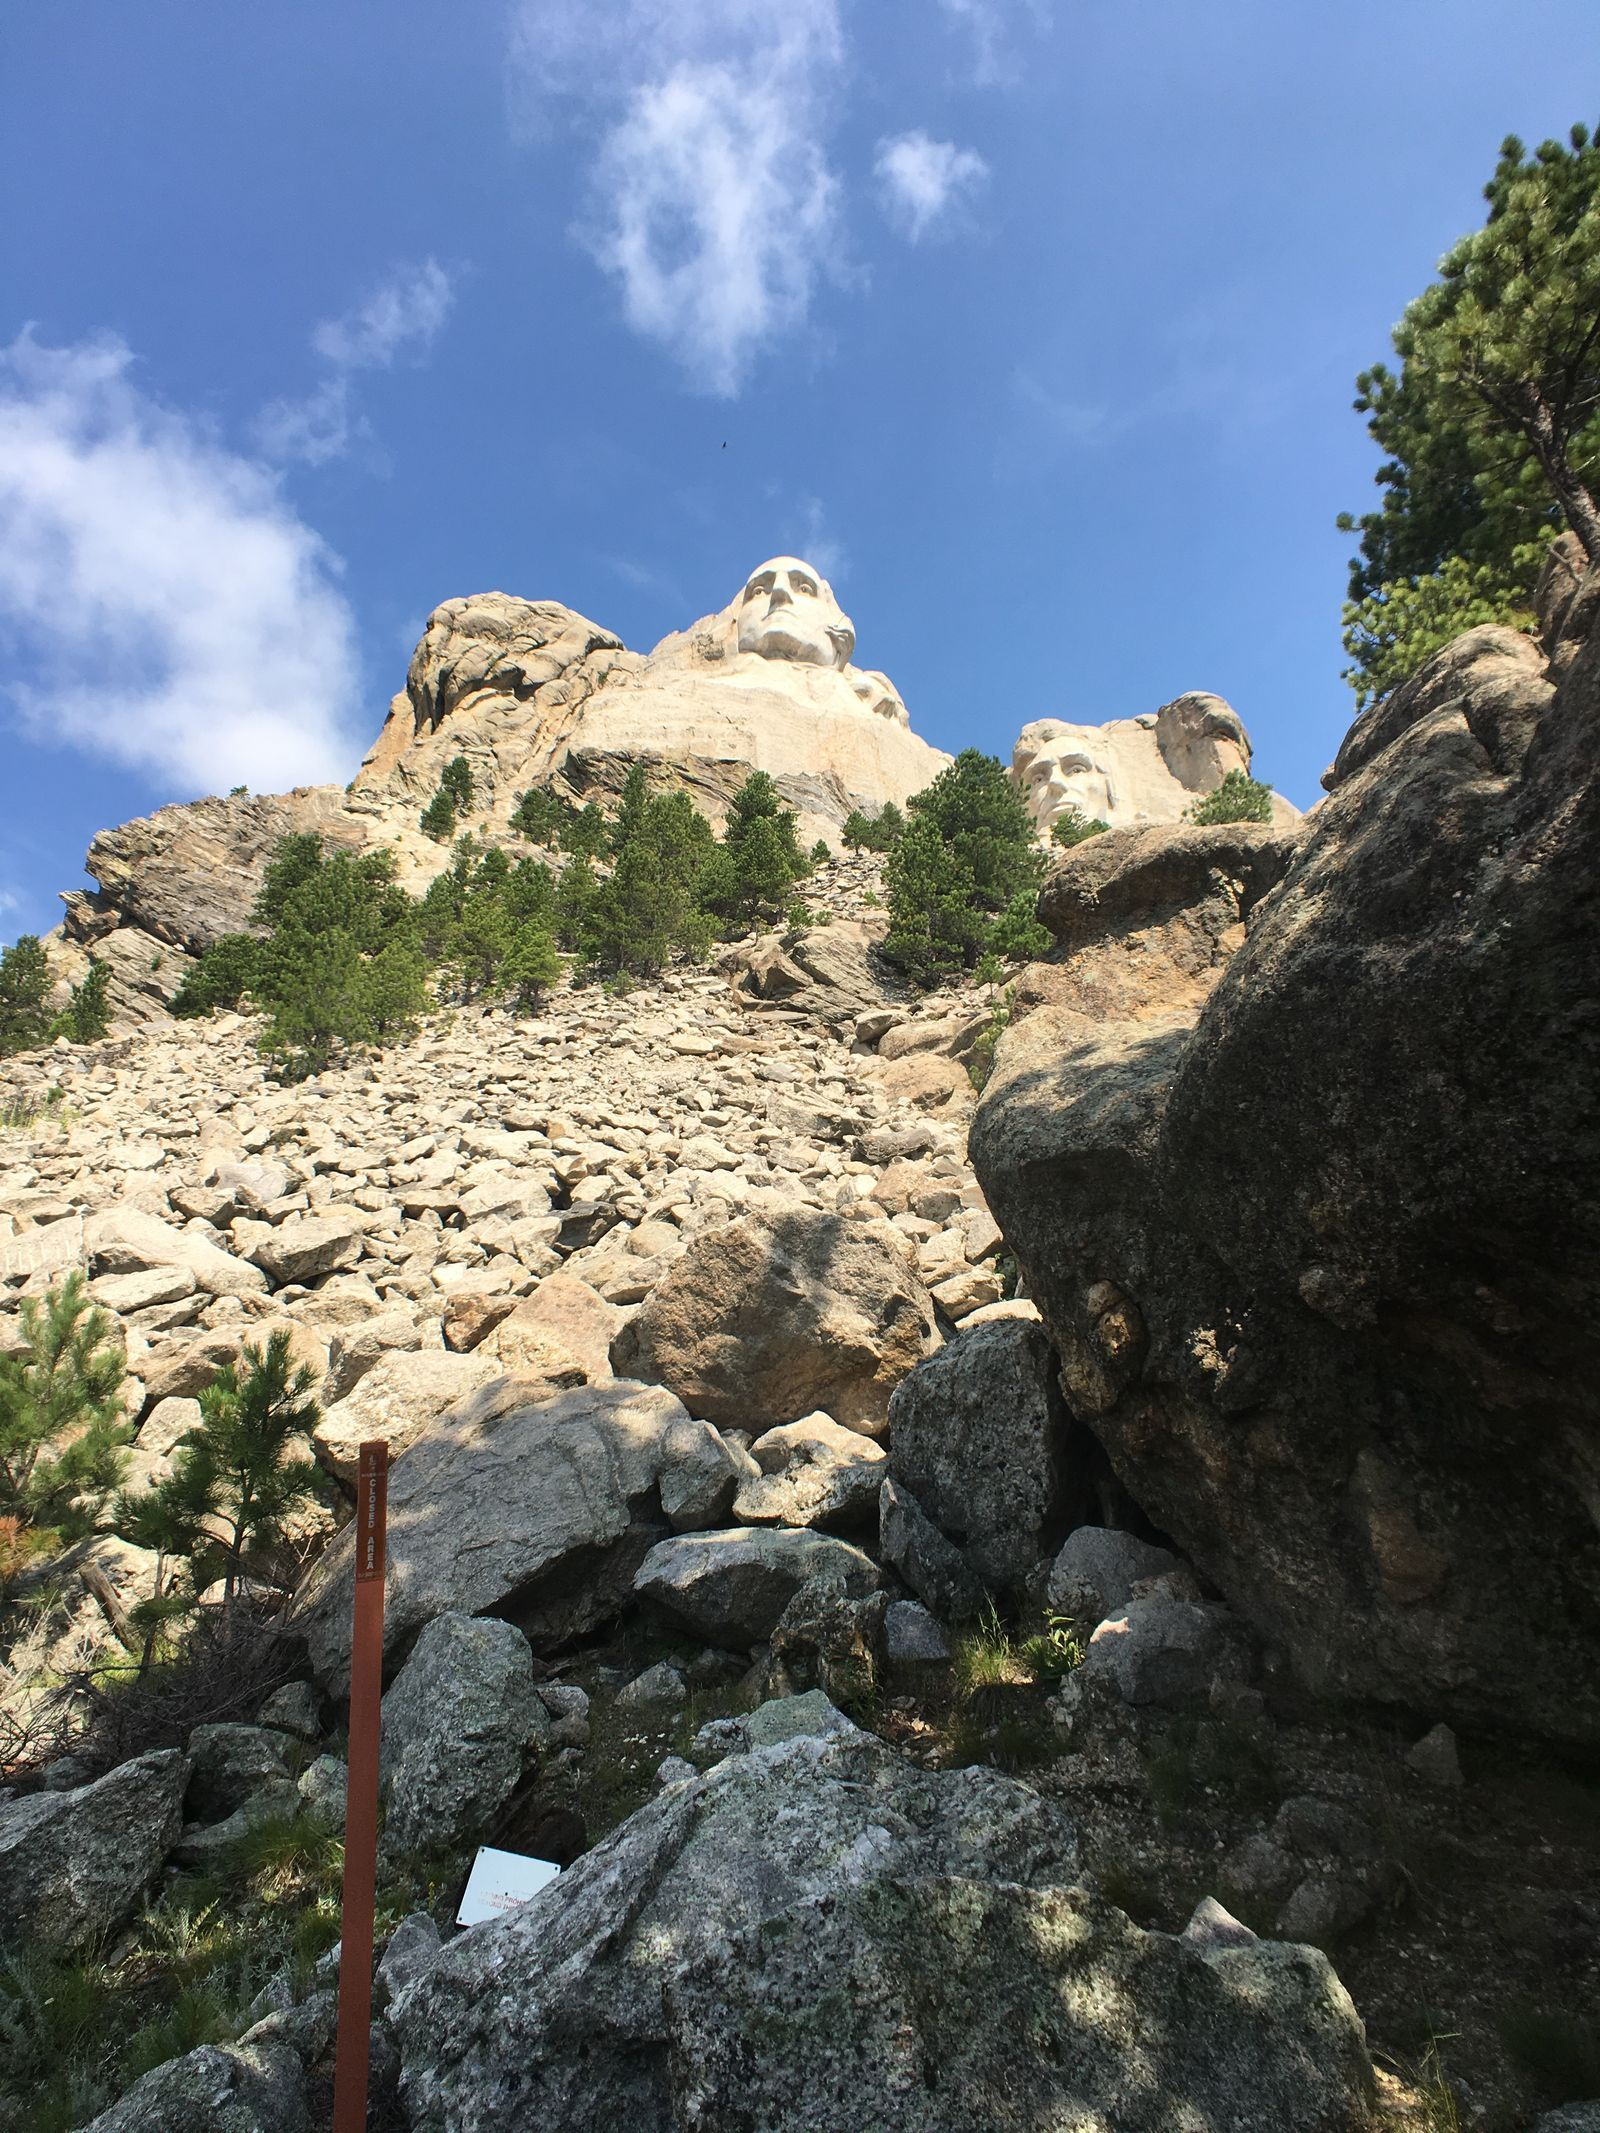 A view of the scree below the faces.